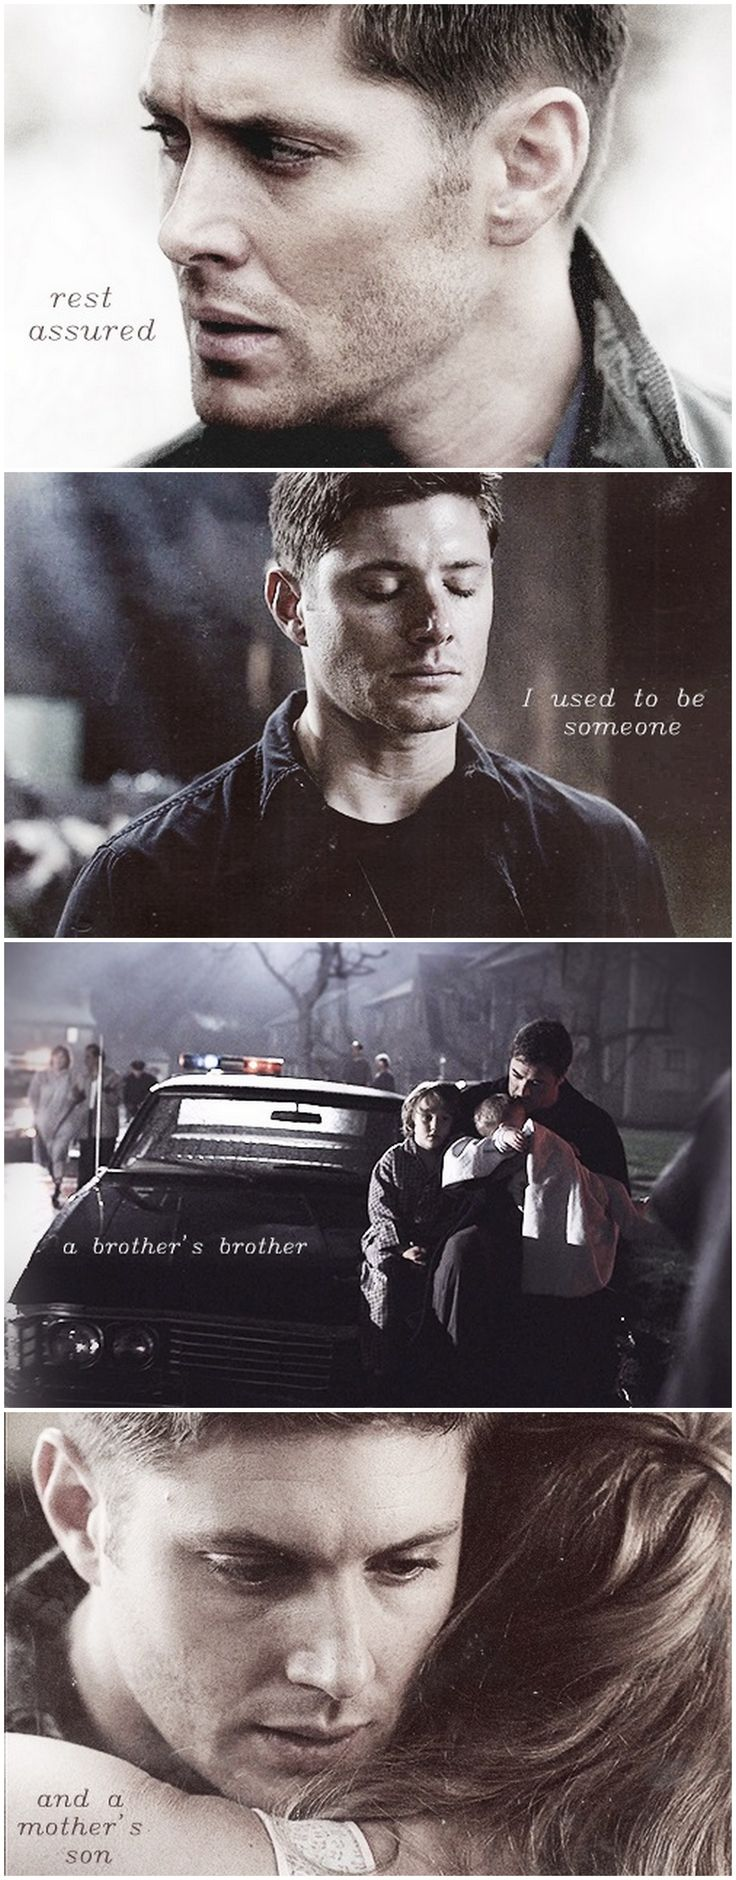 Dean / Rest assured, I used to be someone. A brother's brother and a mother's son.